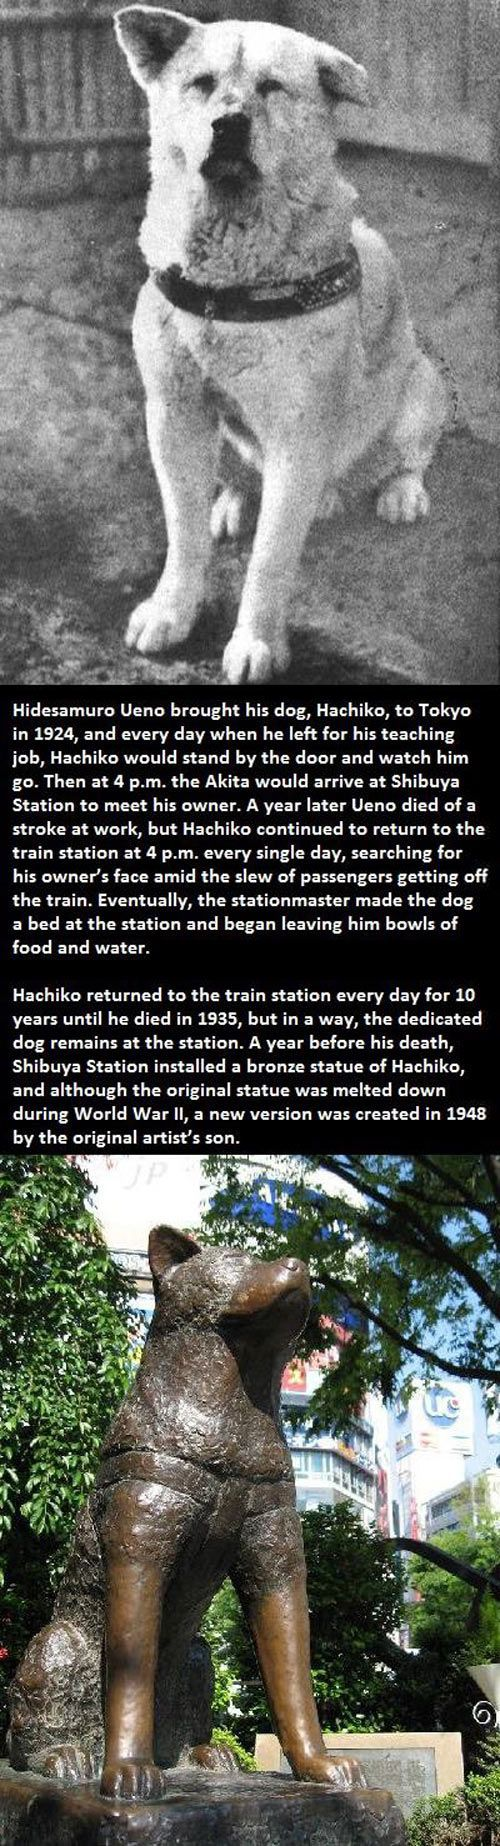 hachiko quotes loyalty in a relationship